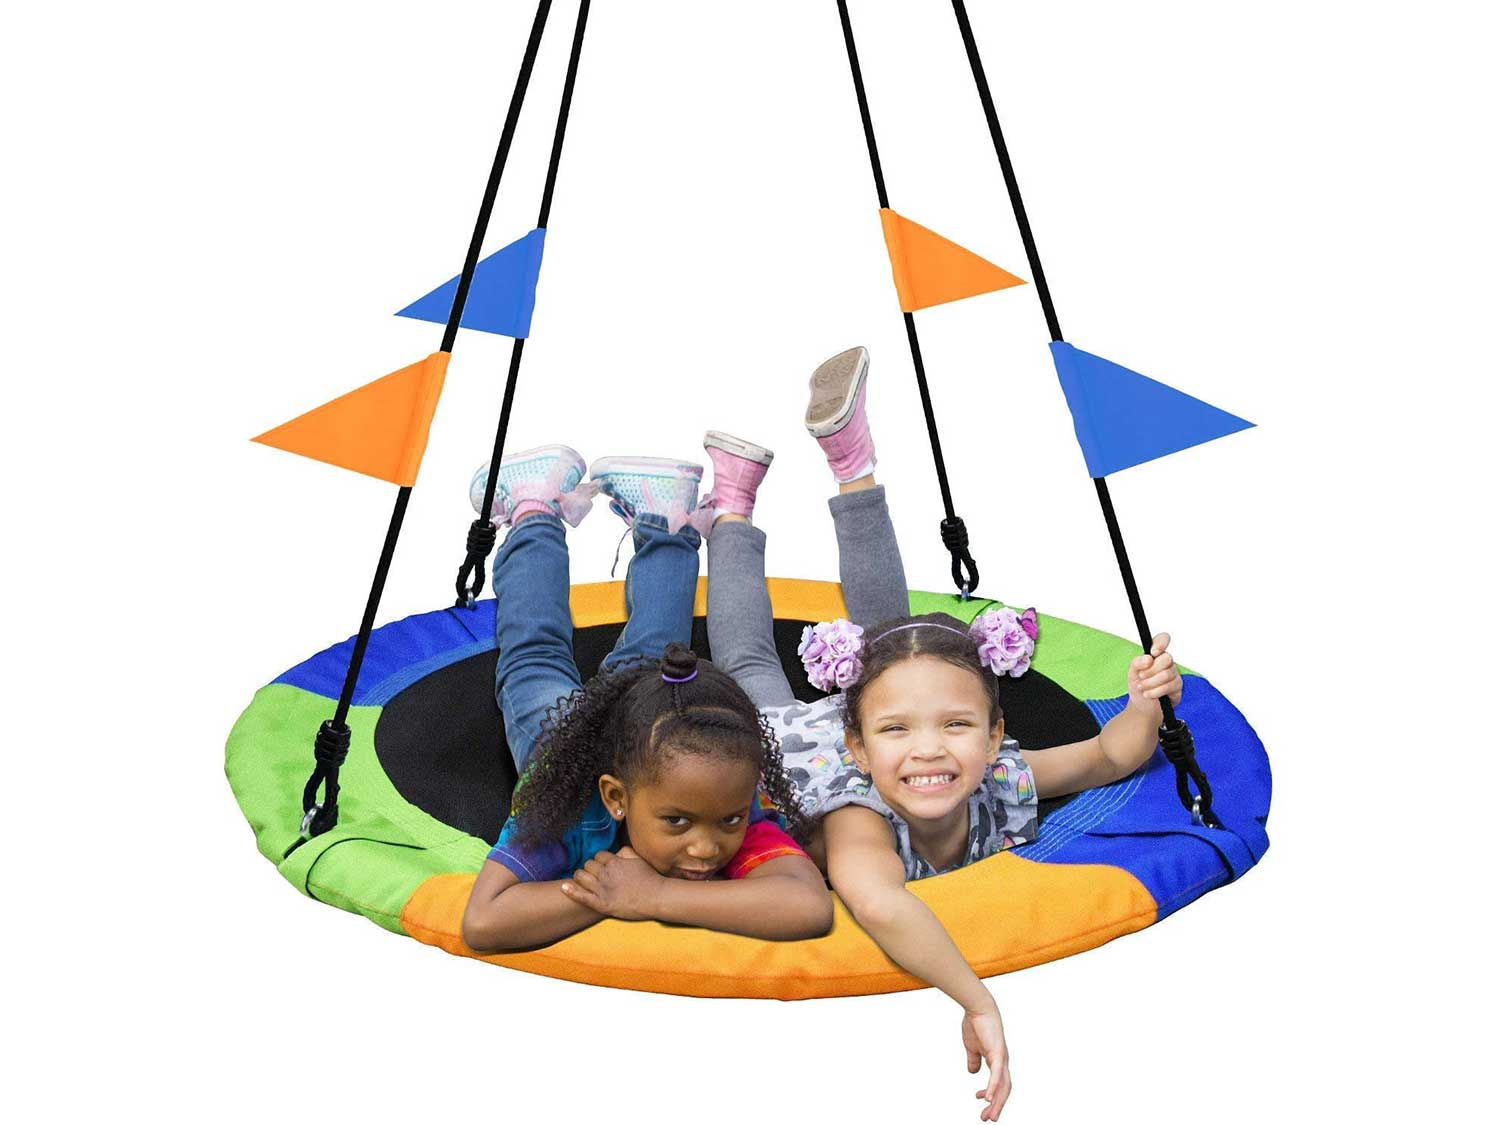 PACEARTH 40 Inch Saucer Tree Swing Flying 660lb Weight Capacity 2 Added Hanging Straps Adjustable Multi-Strand Ropes Colorful Safe and Durable Swing Seat for Children Adults